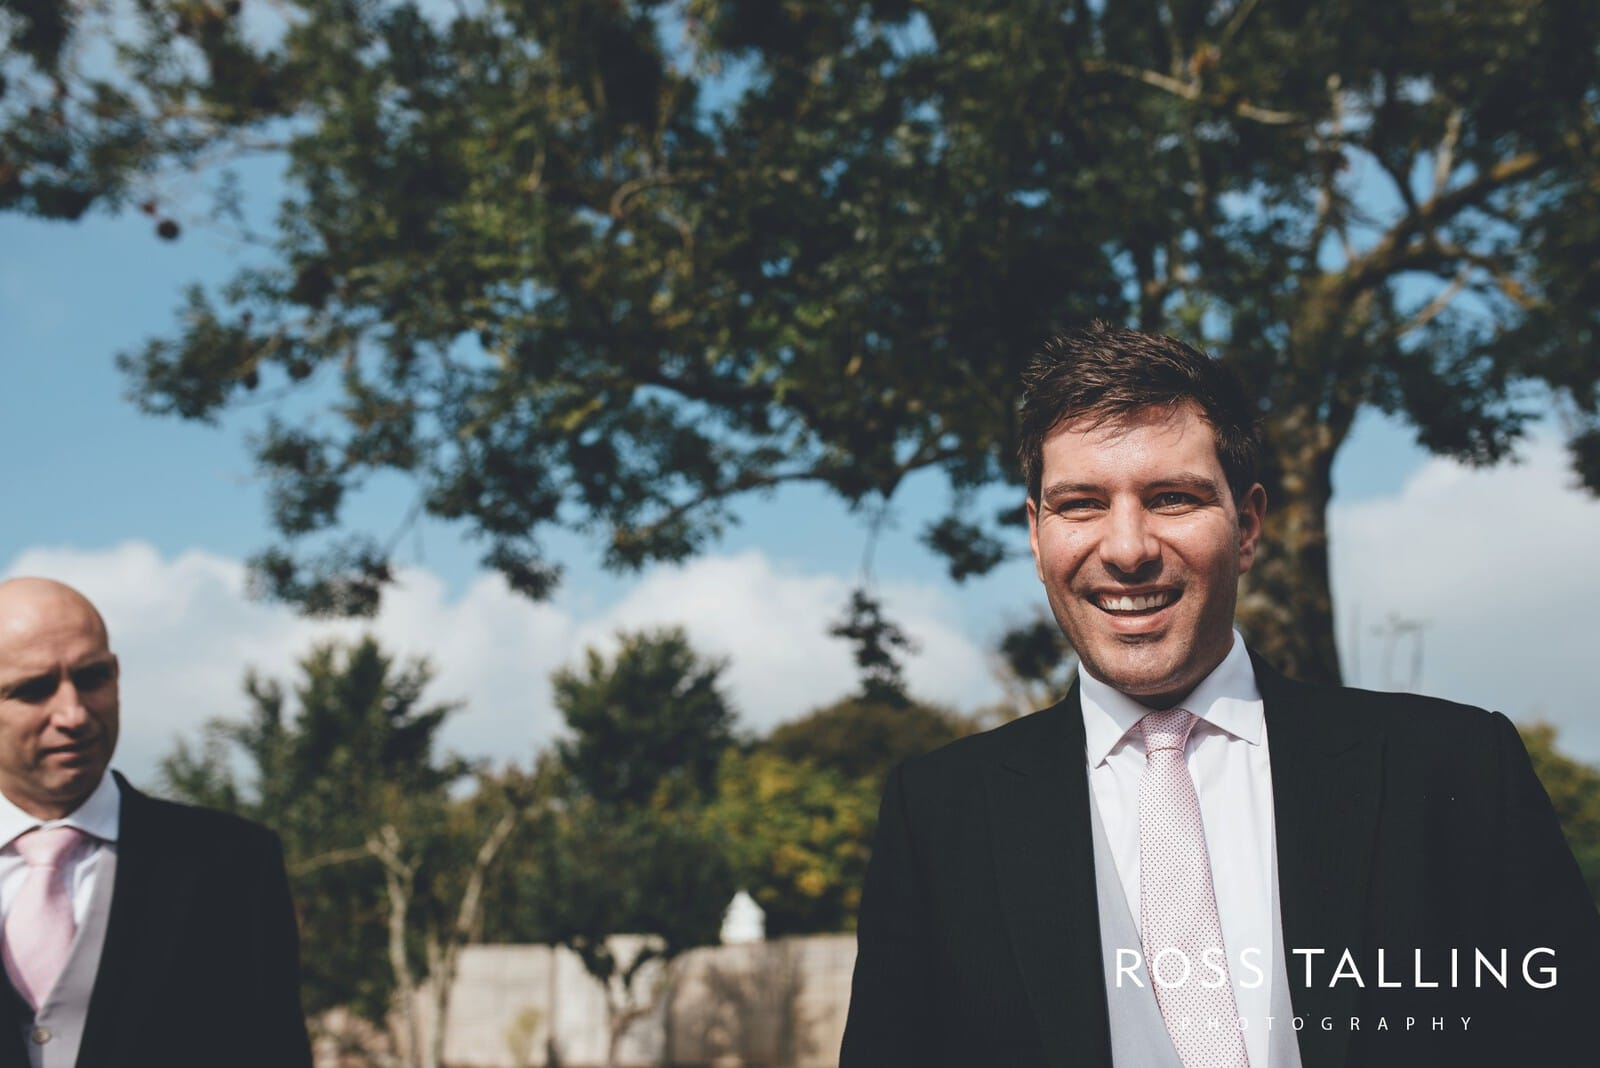 Sussex Wedding Photography by Ross Talling_0009